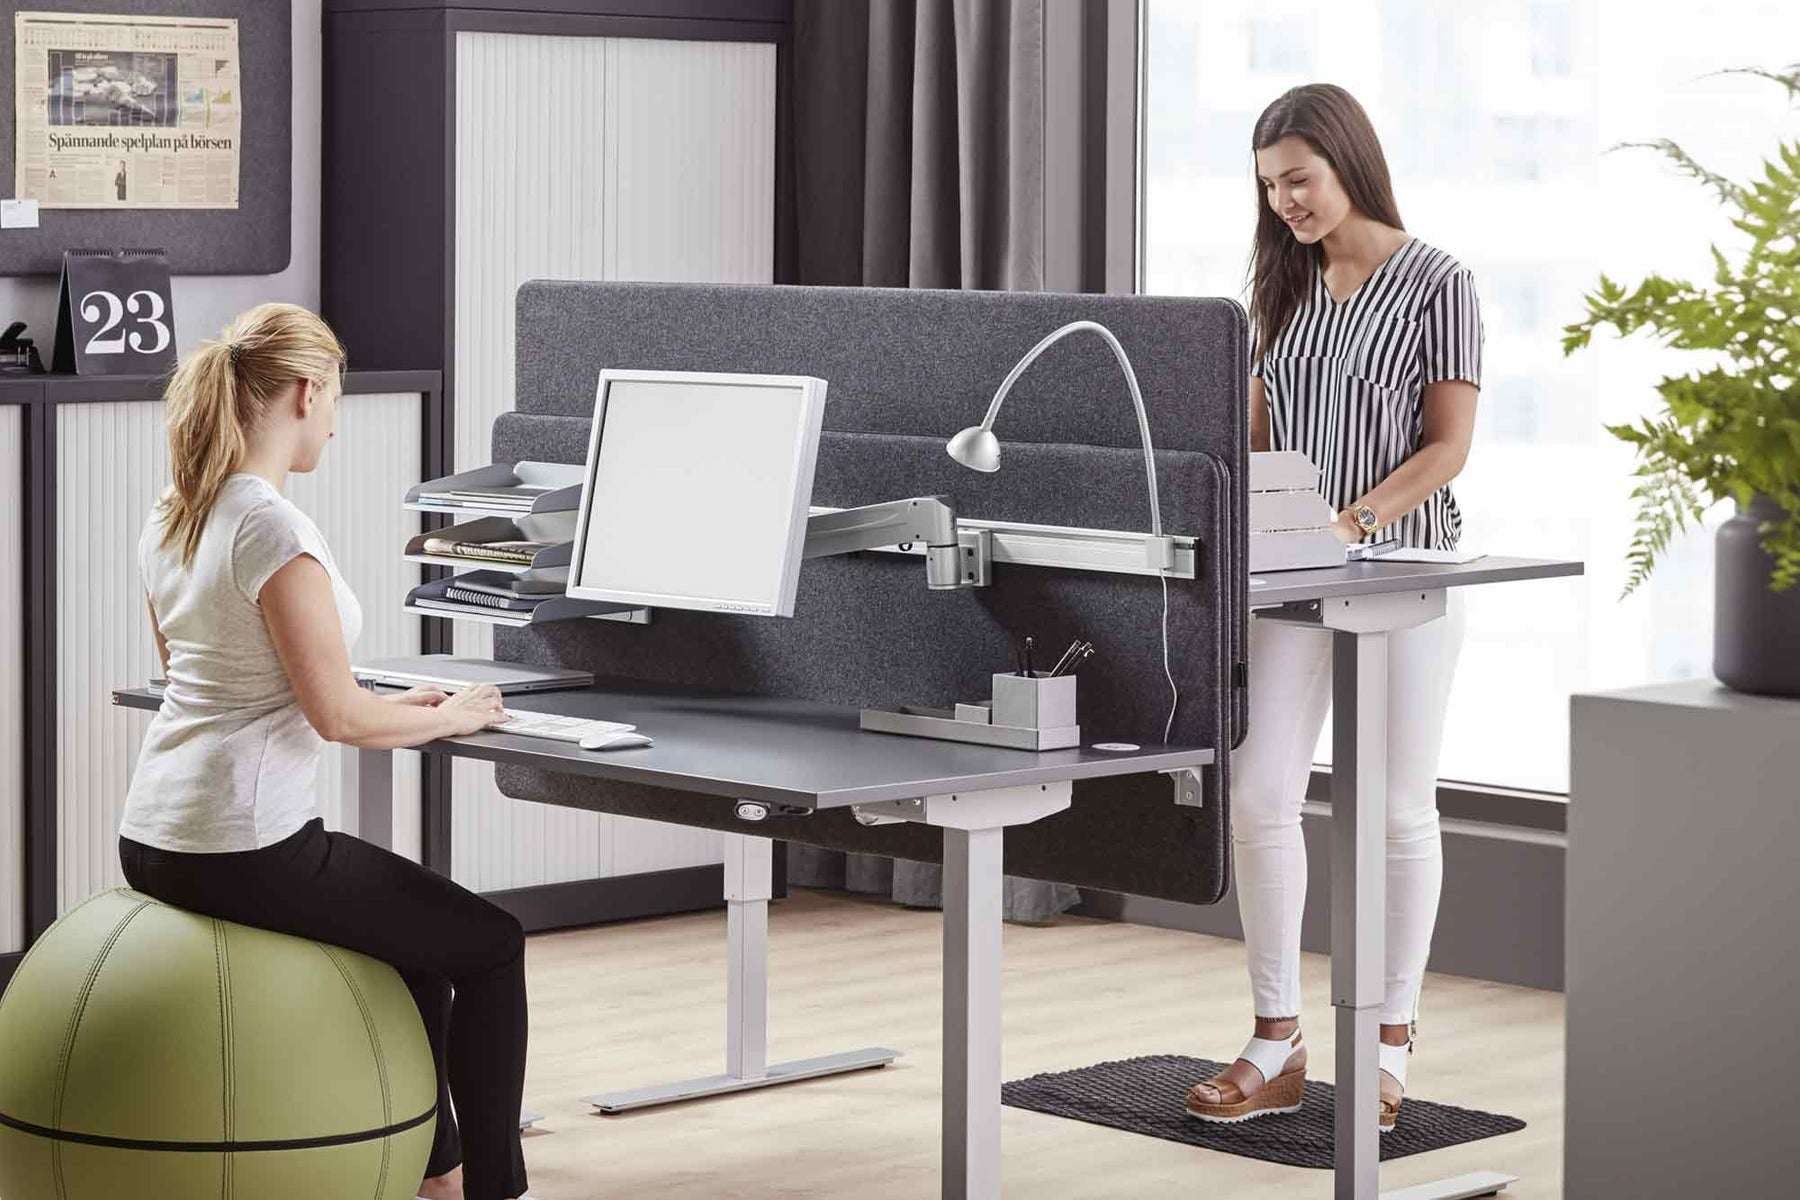 Tips for Stand-up Workstation Users